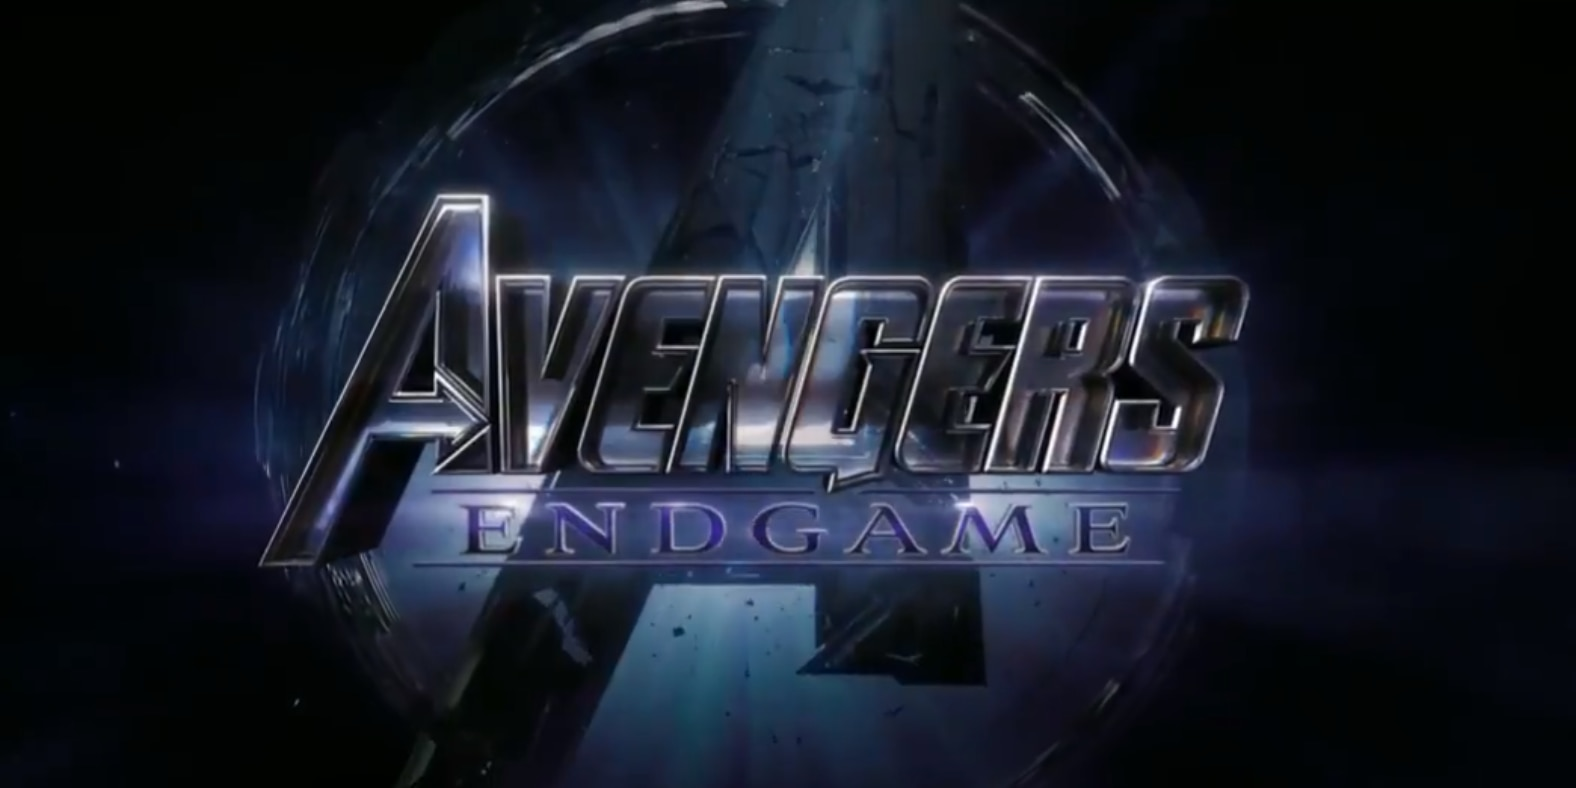 'Avengers: Endgame' trailer released